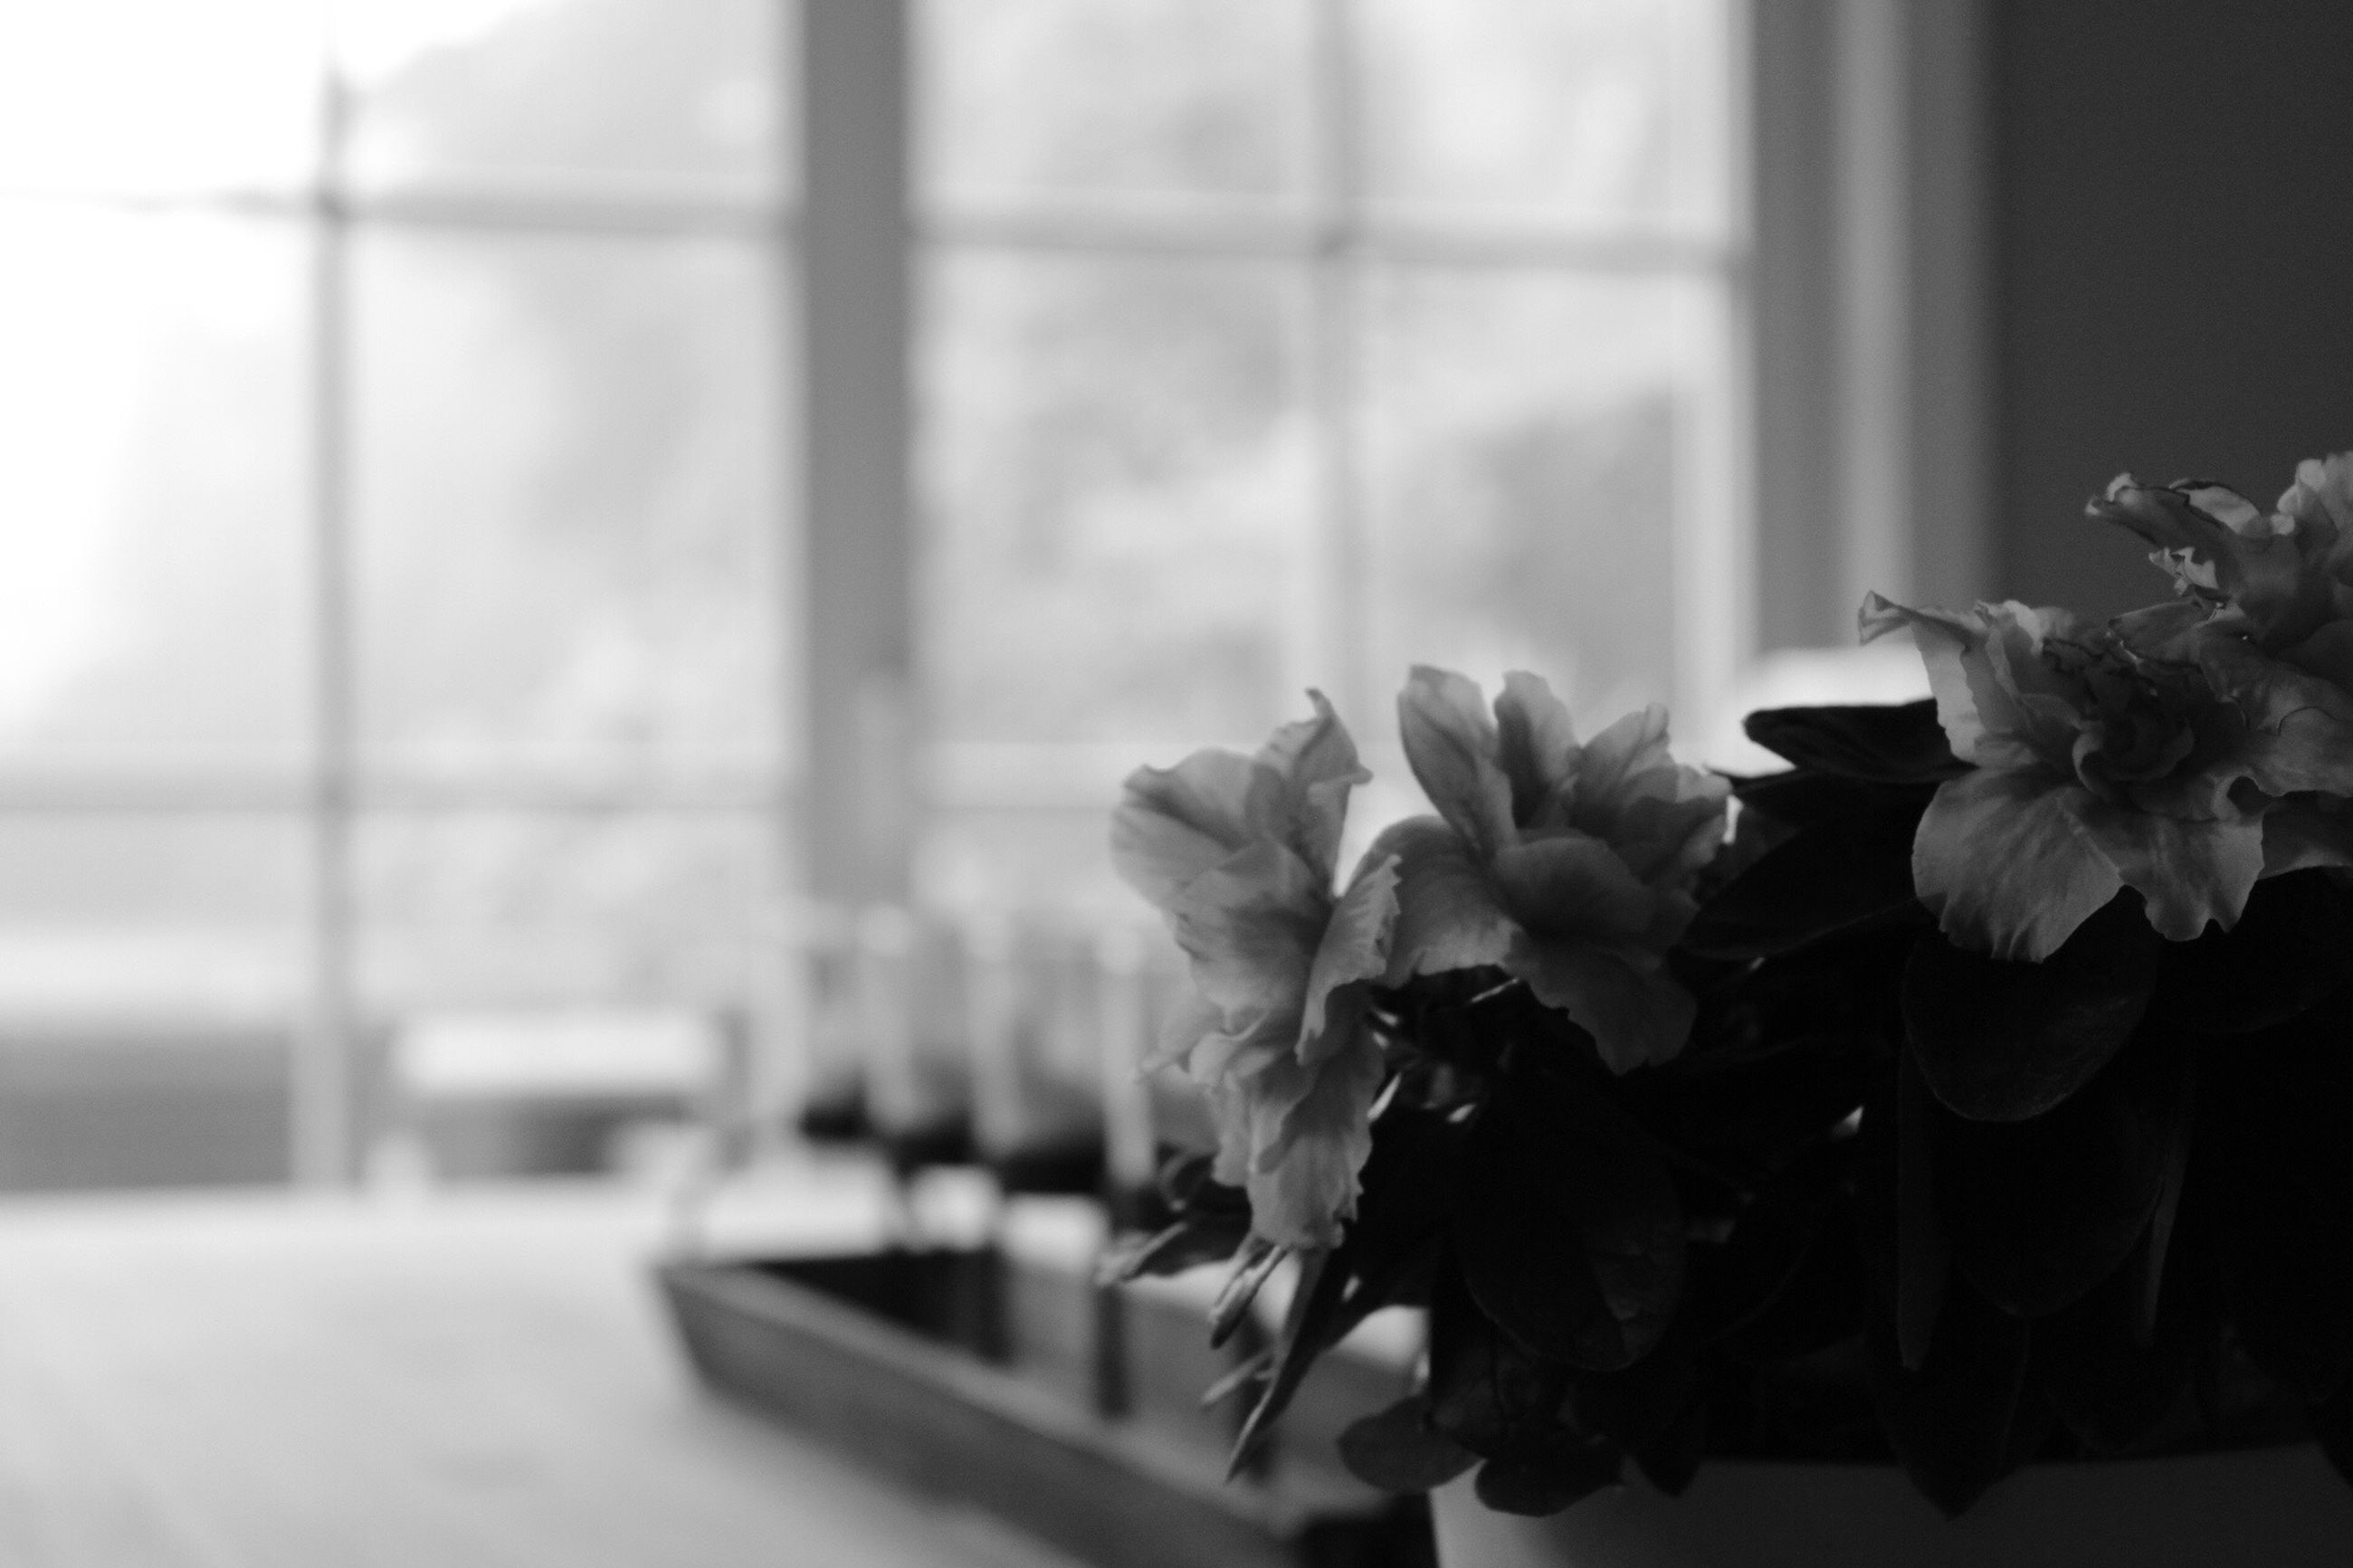 flower, window, indoors, fragility, nature, freshness, close-up, day, beauty in nature, plant, no people, flower head